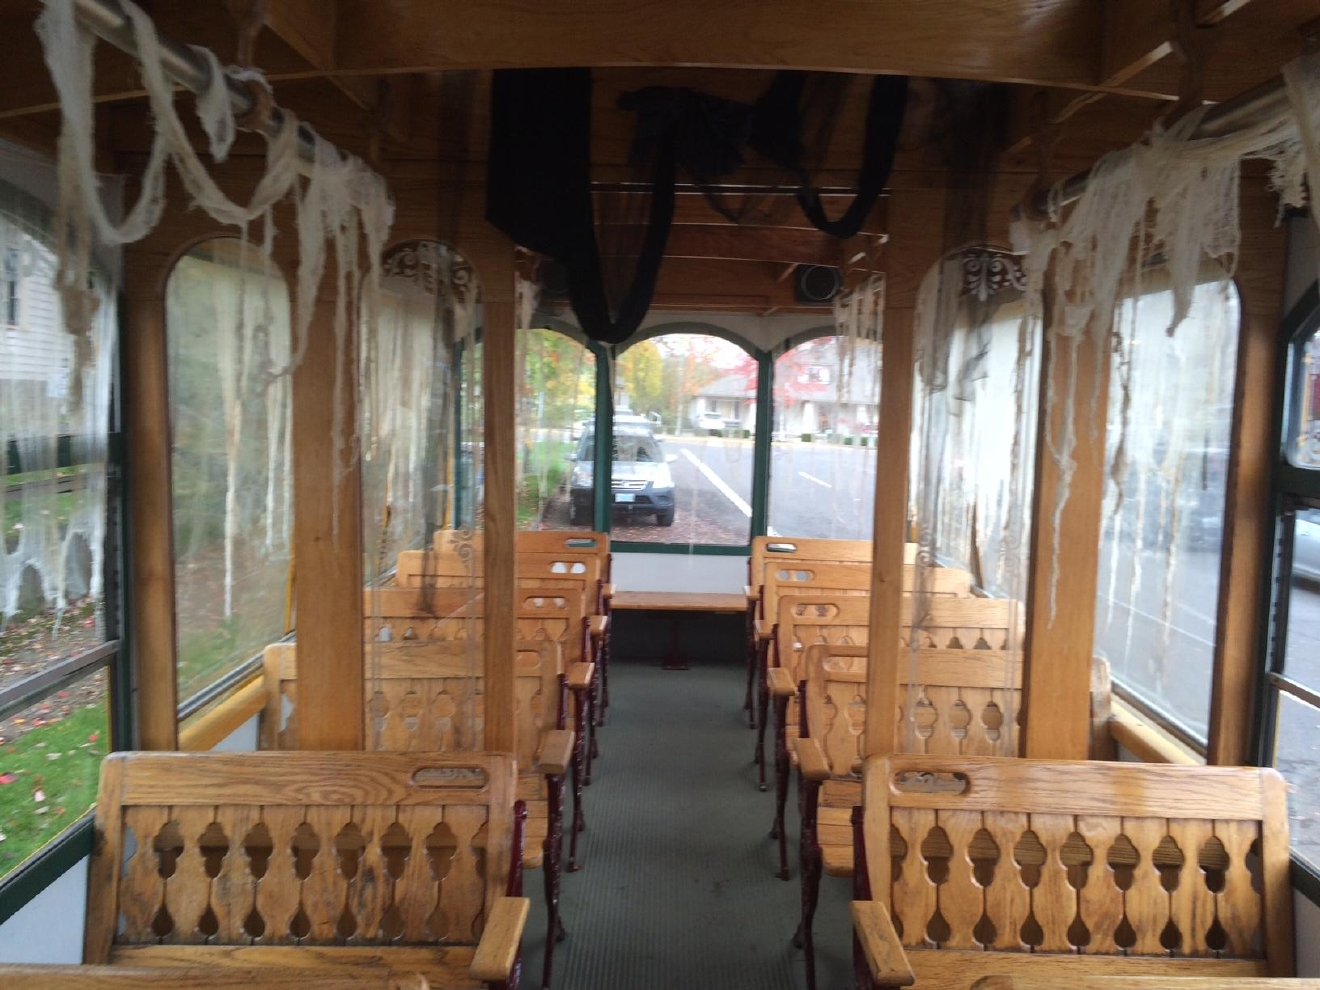 The Trolley of Terror will take you throughout Historic Downtown and fills you in on the spooky past of the buildings and houses you'll pass along the way. (SBG)